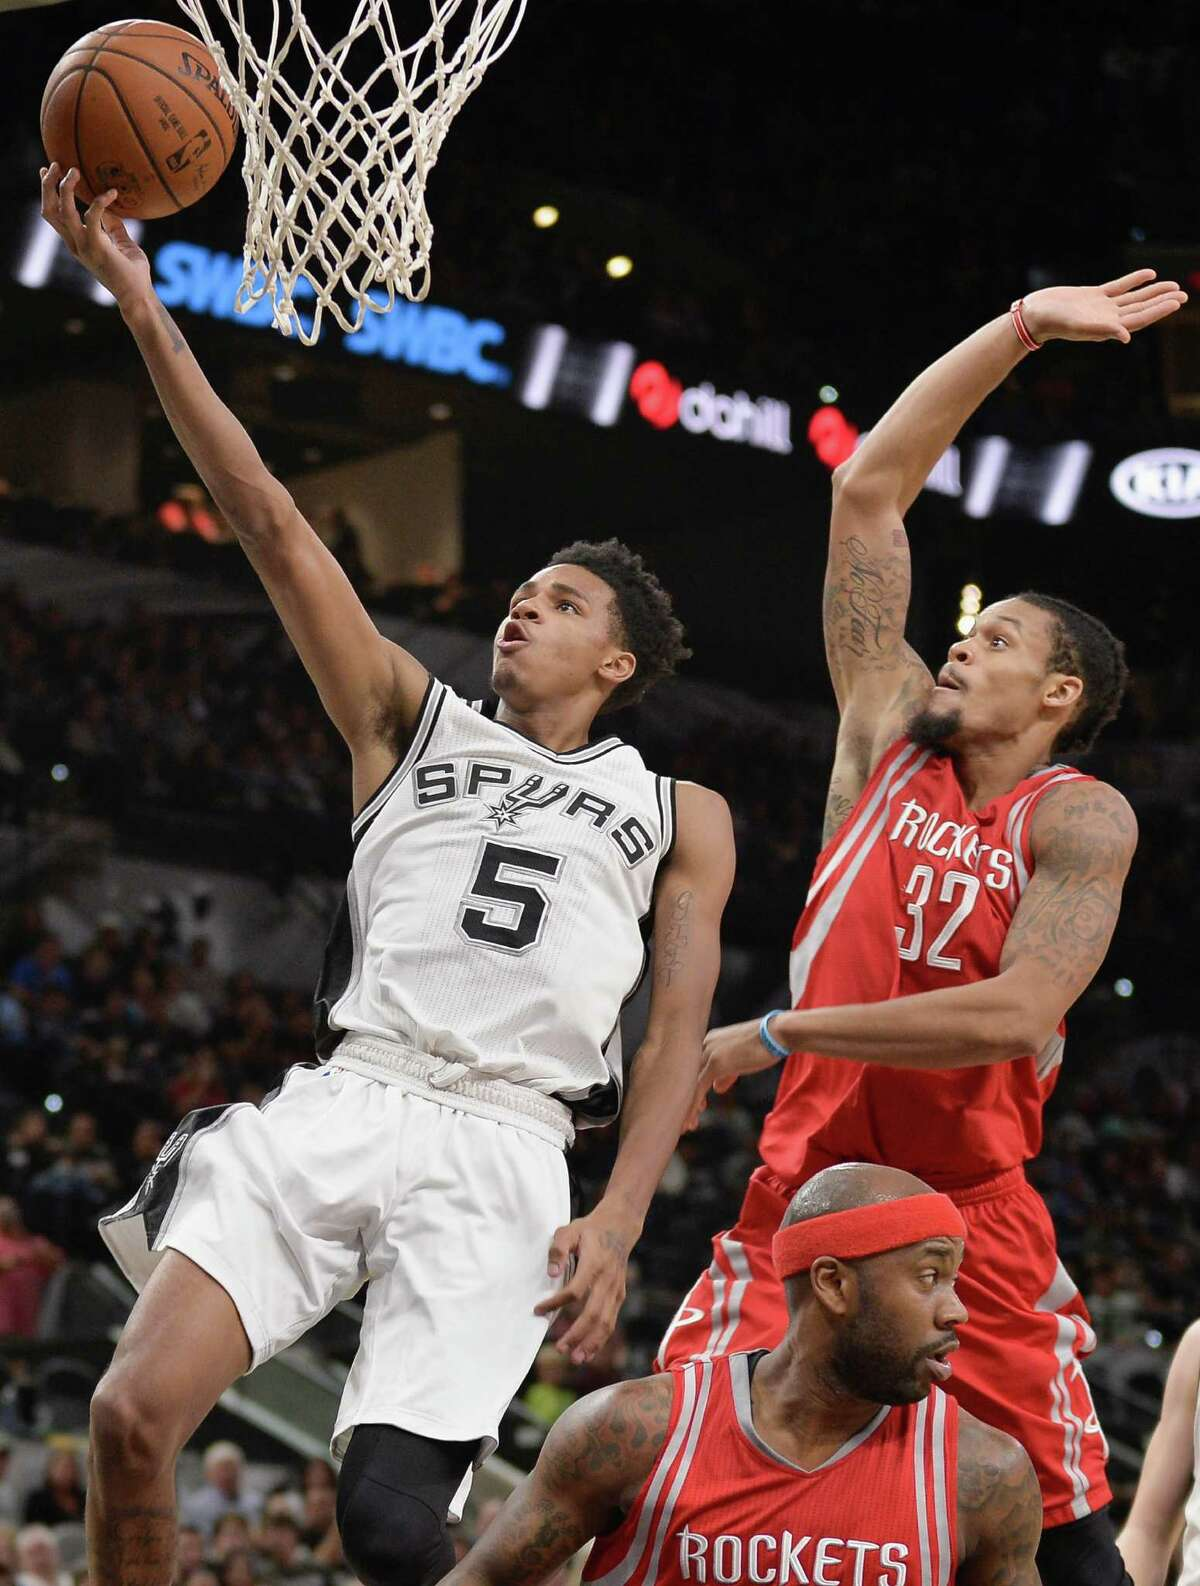 San Antonio Spurs guard Dejounte Murray (5) shoots next to Houston Rockets guard K.J. McDaniels (32) during the second half of a preseason NBA basketball game, Friday, Oct. 21, 2016, in San Antonio. (AP Photo/Darren Abate)